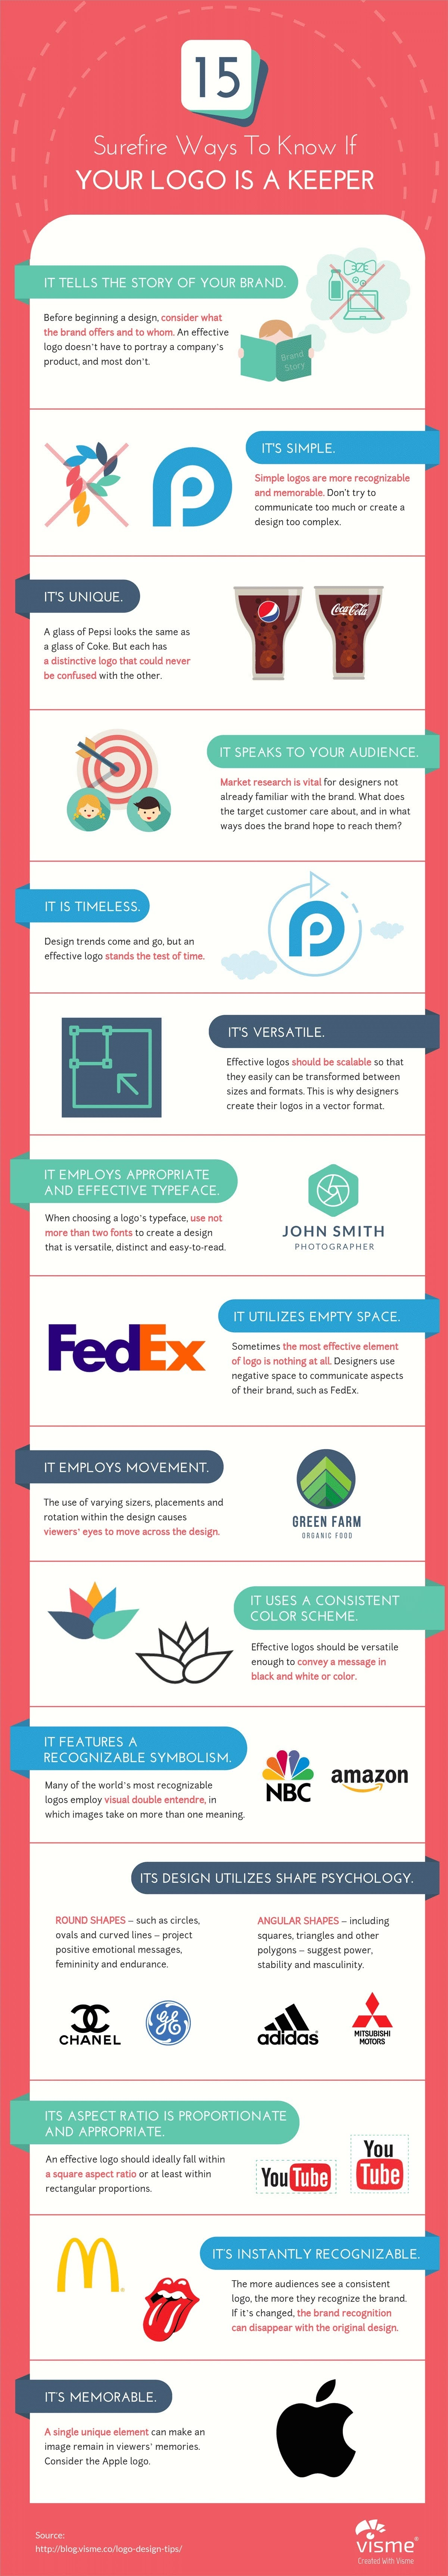 15 Surefire Ways to Know If Your Logo Is a Keeper #infographic